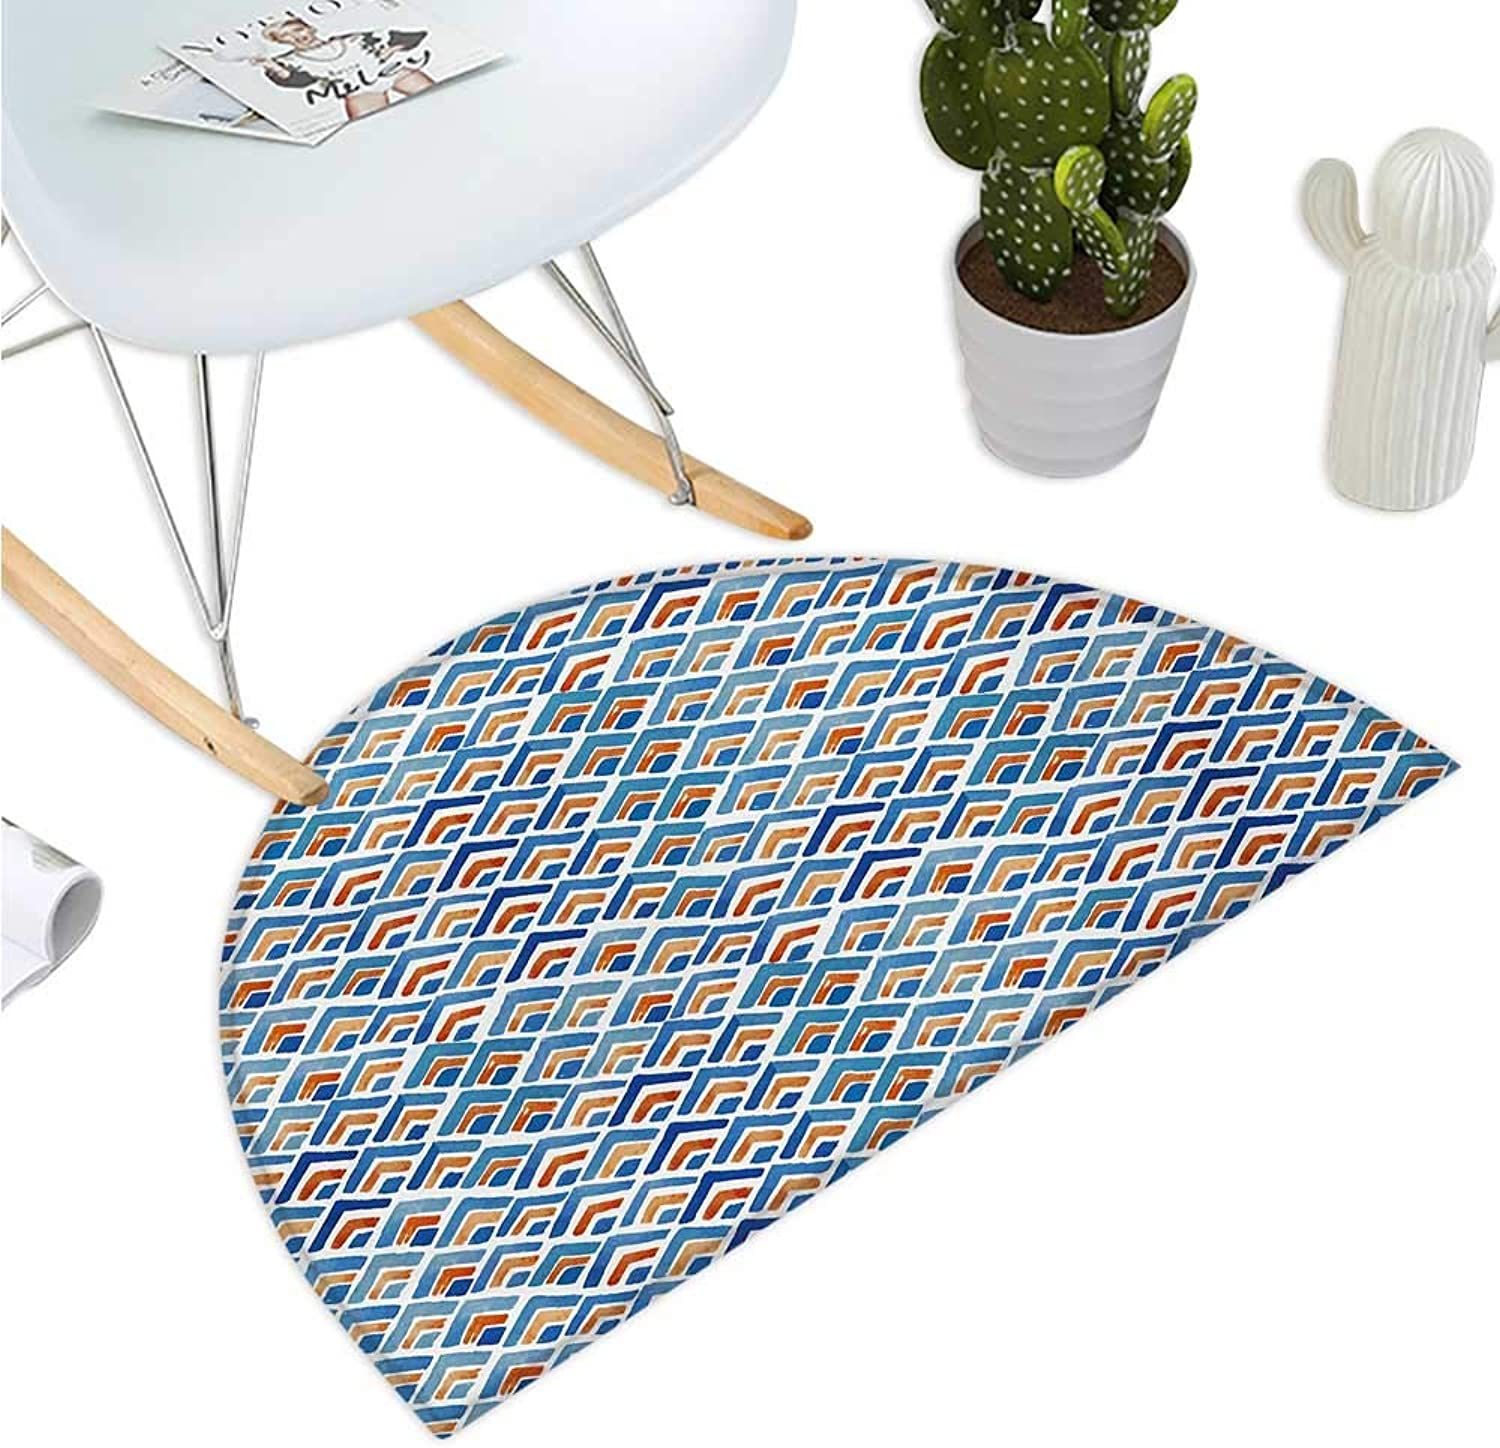 Japanese Semicircular Cushion Geometric Chevron Repeating Pattern in Watercolor Style Abstract Artwork Entry Door Mat H 51.1  xD 76.7  Pale bluee orange